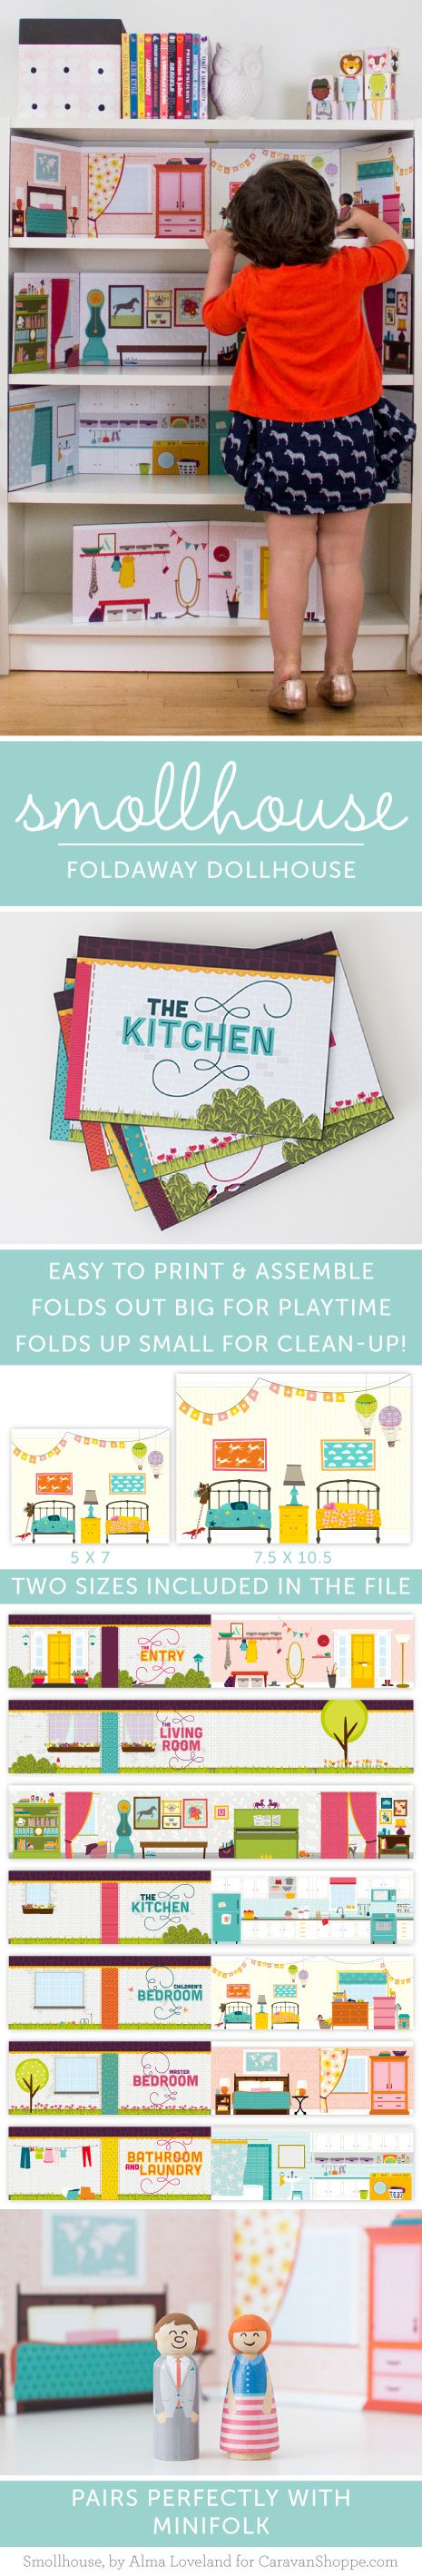 Printable and easy-to-assemble dollhouse. $12 for 6 very detailed rooms!